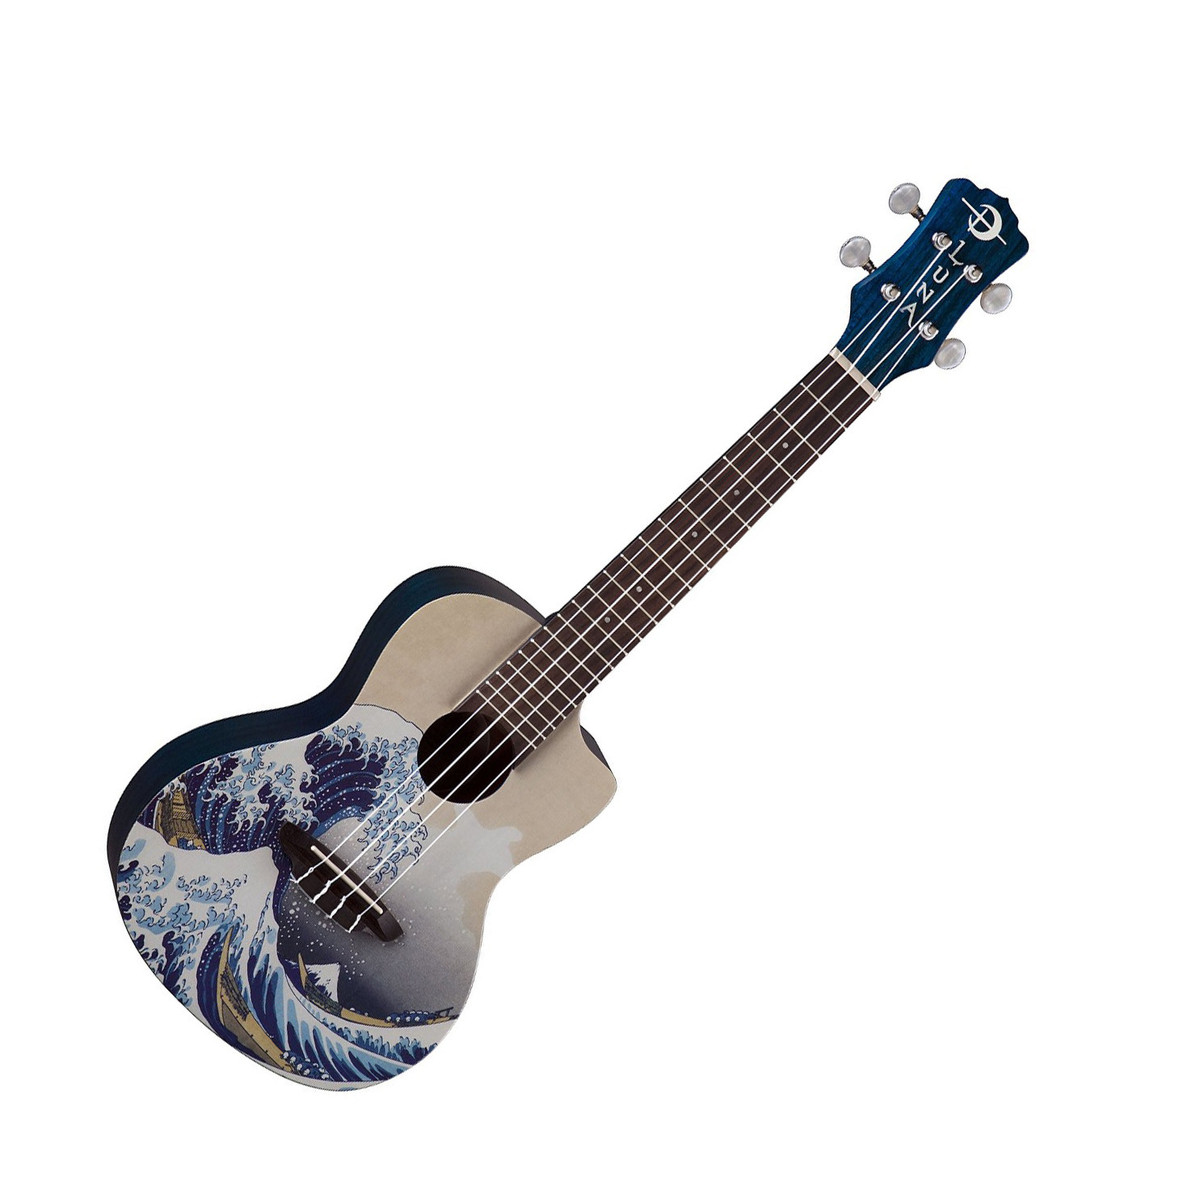 Luna great wave ukul l concert housse for Housse ukulele concert